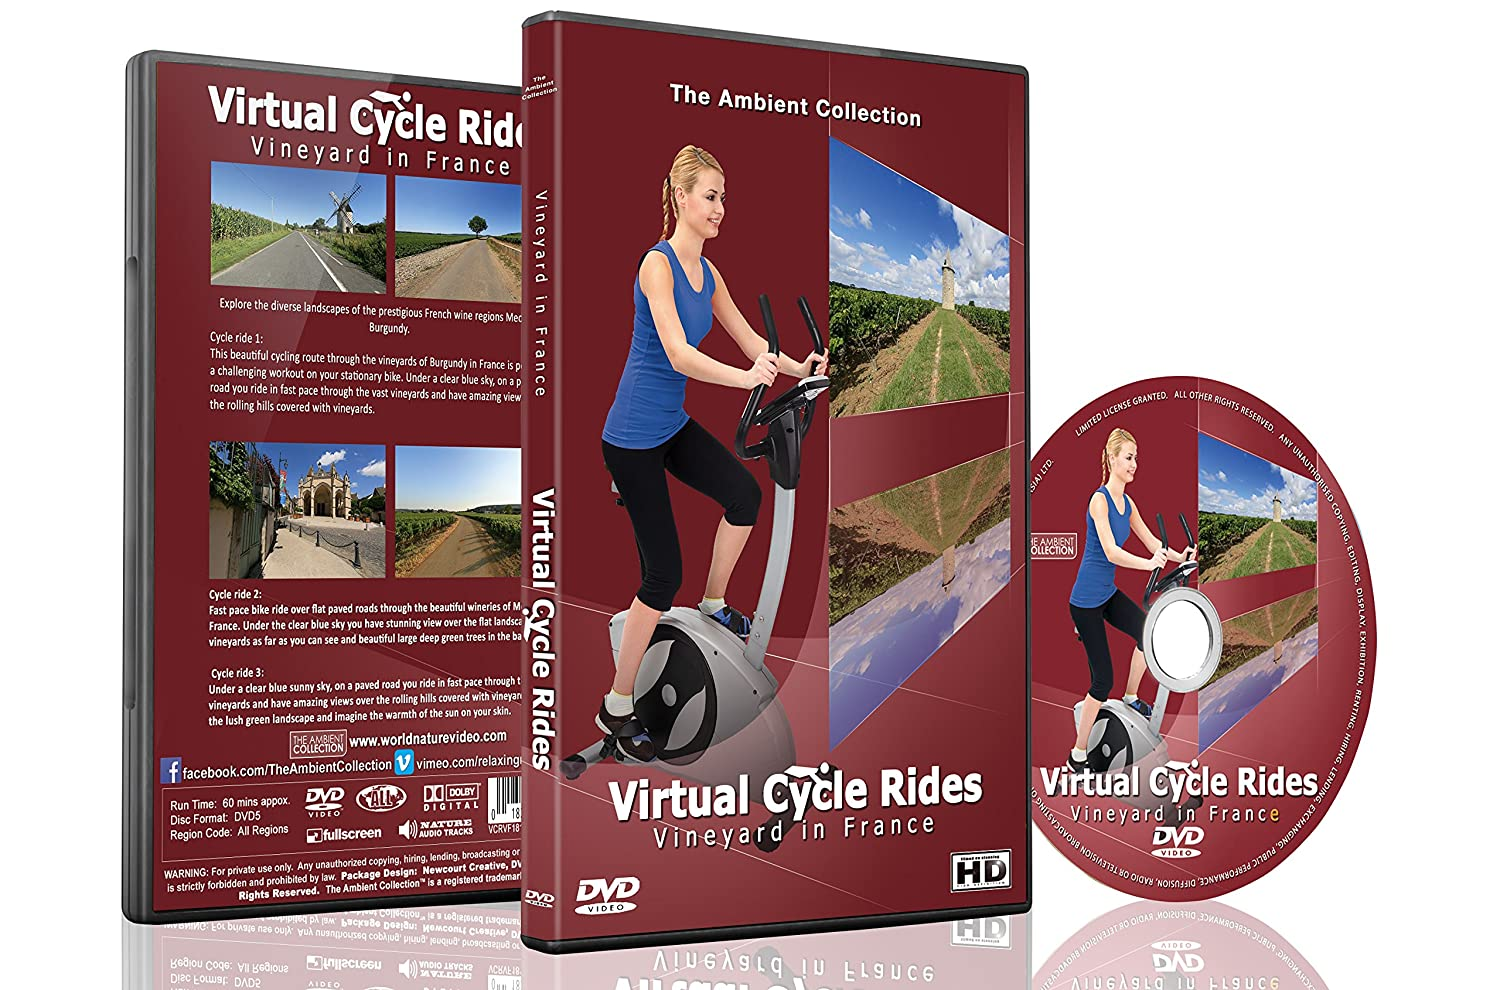 Virtual Cycle Rides - Vineyard in France for Indoor Cycling ...